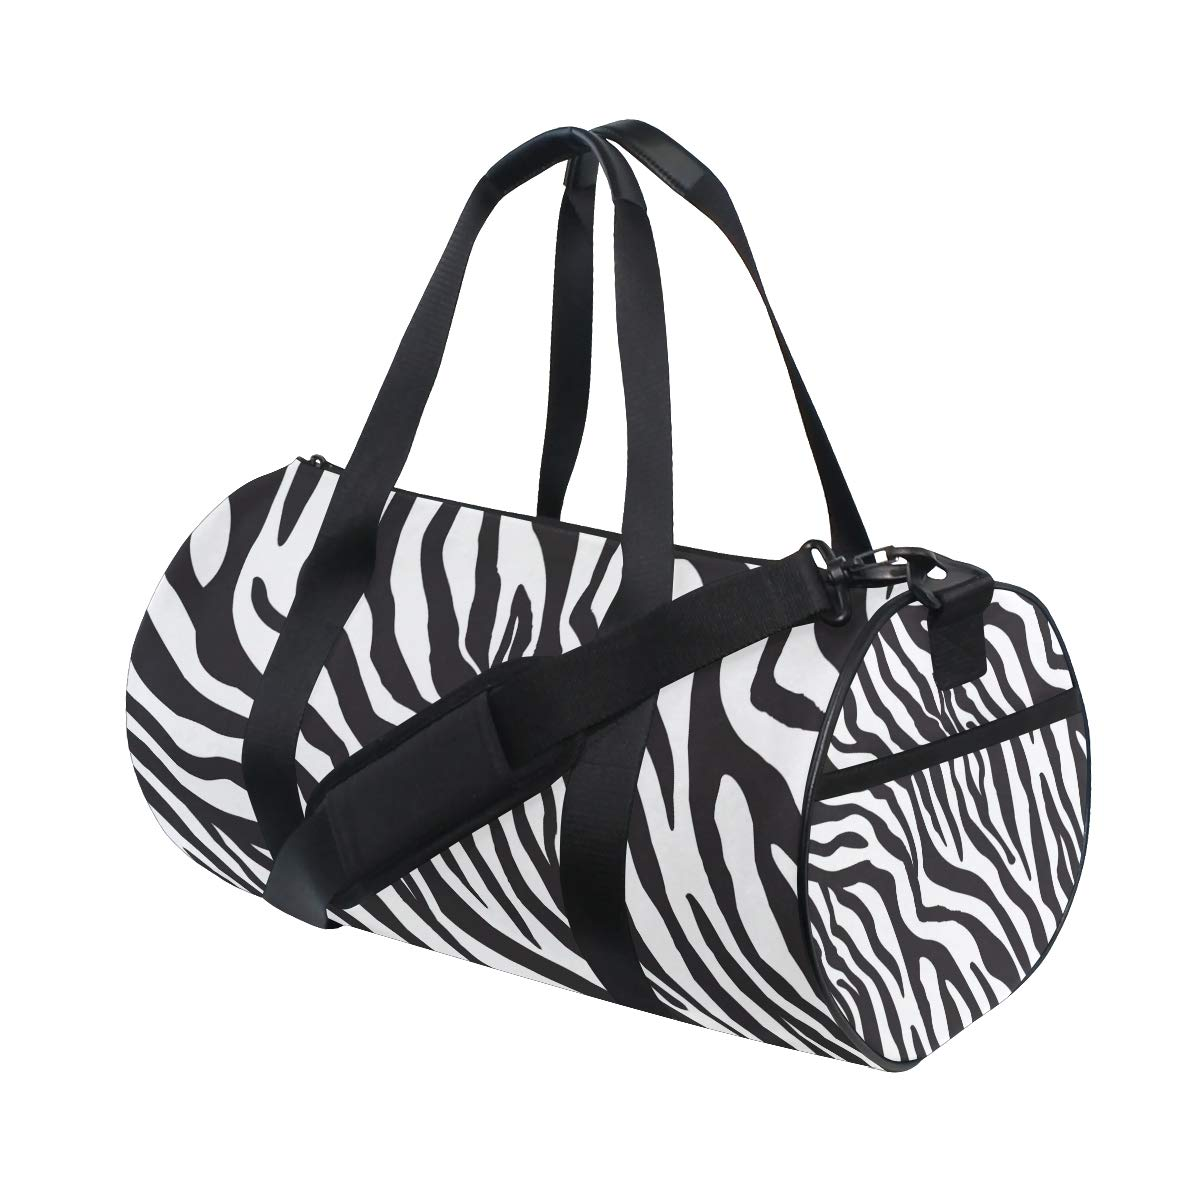 Zebra Yoga Sports Gym Duffle Bags Tote Sling Travel Bag Patterned Canvas with Pocket and Zipper For Men Women Bag